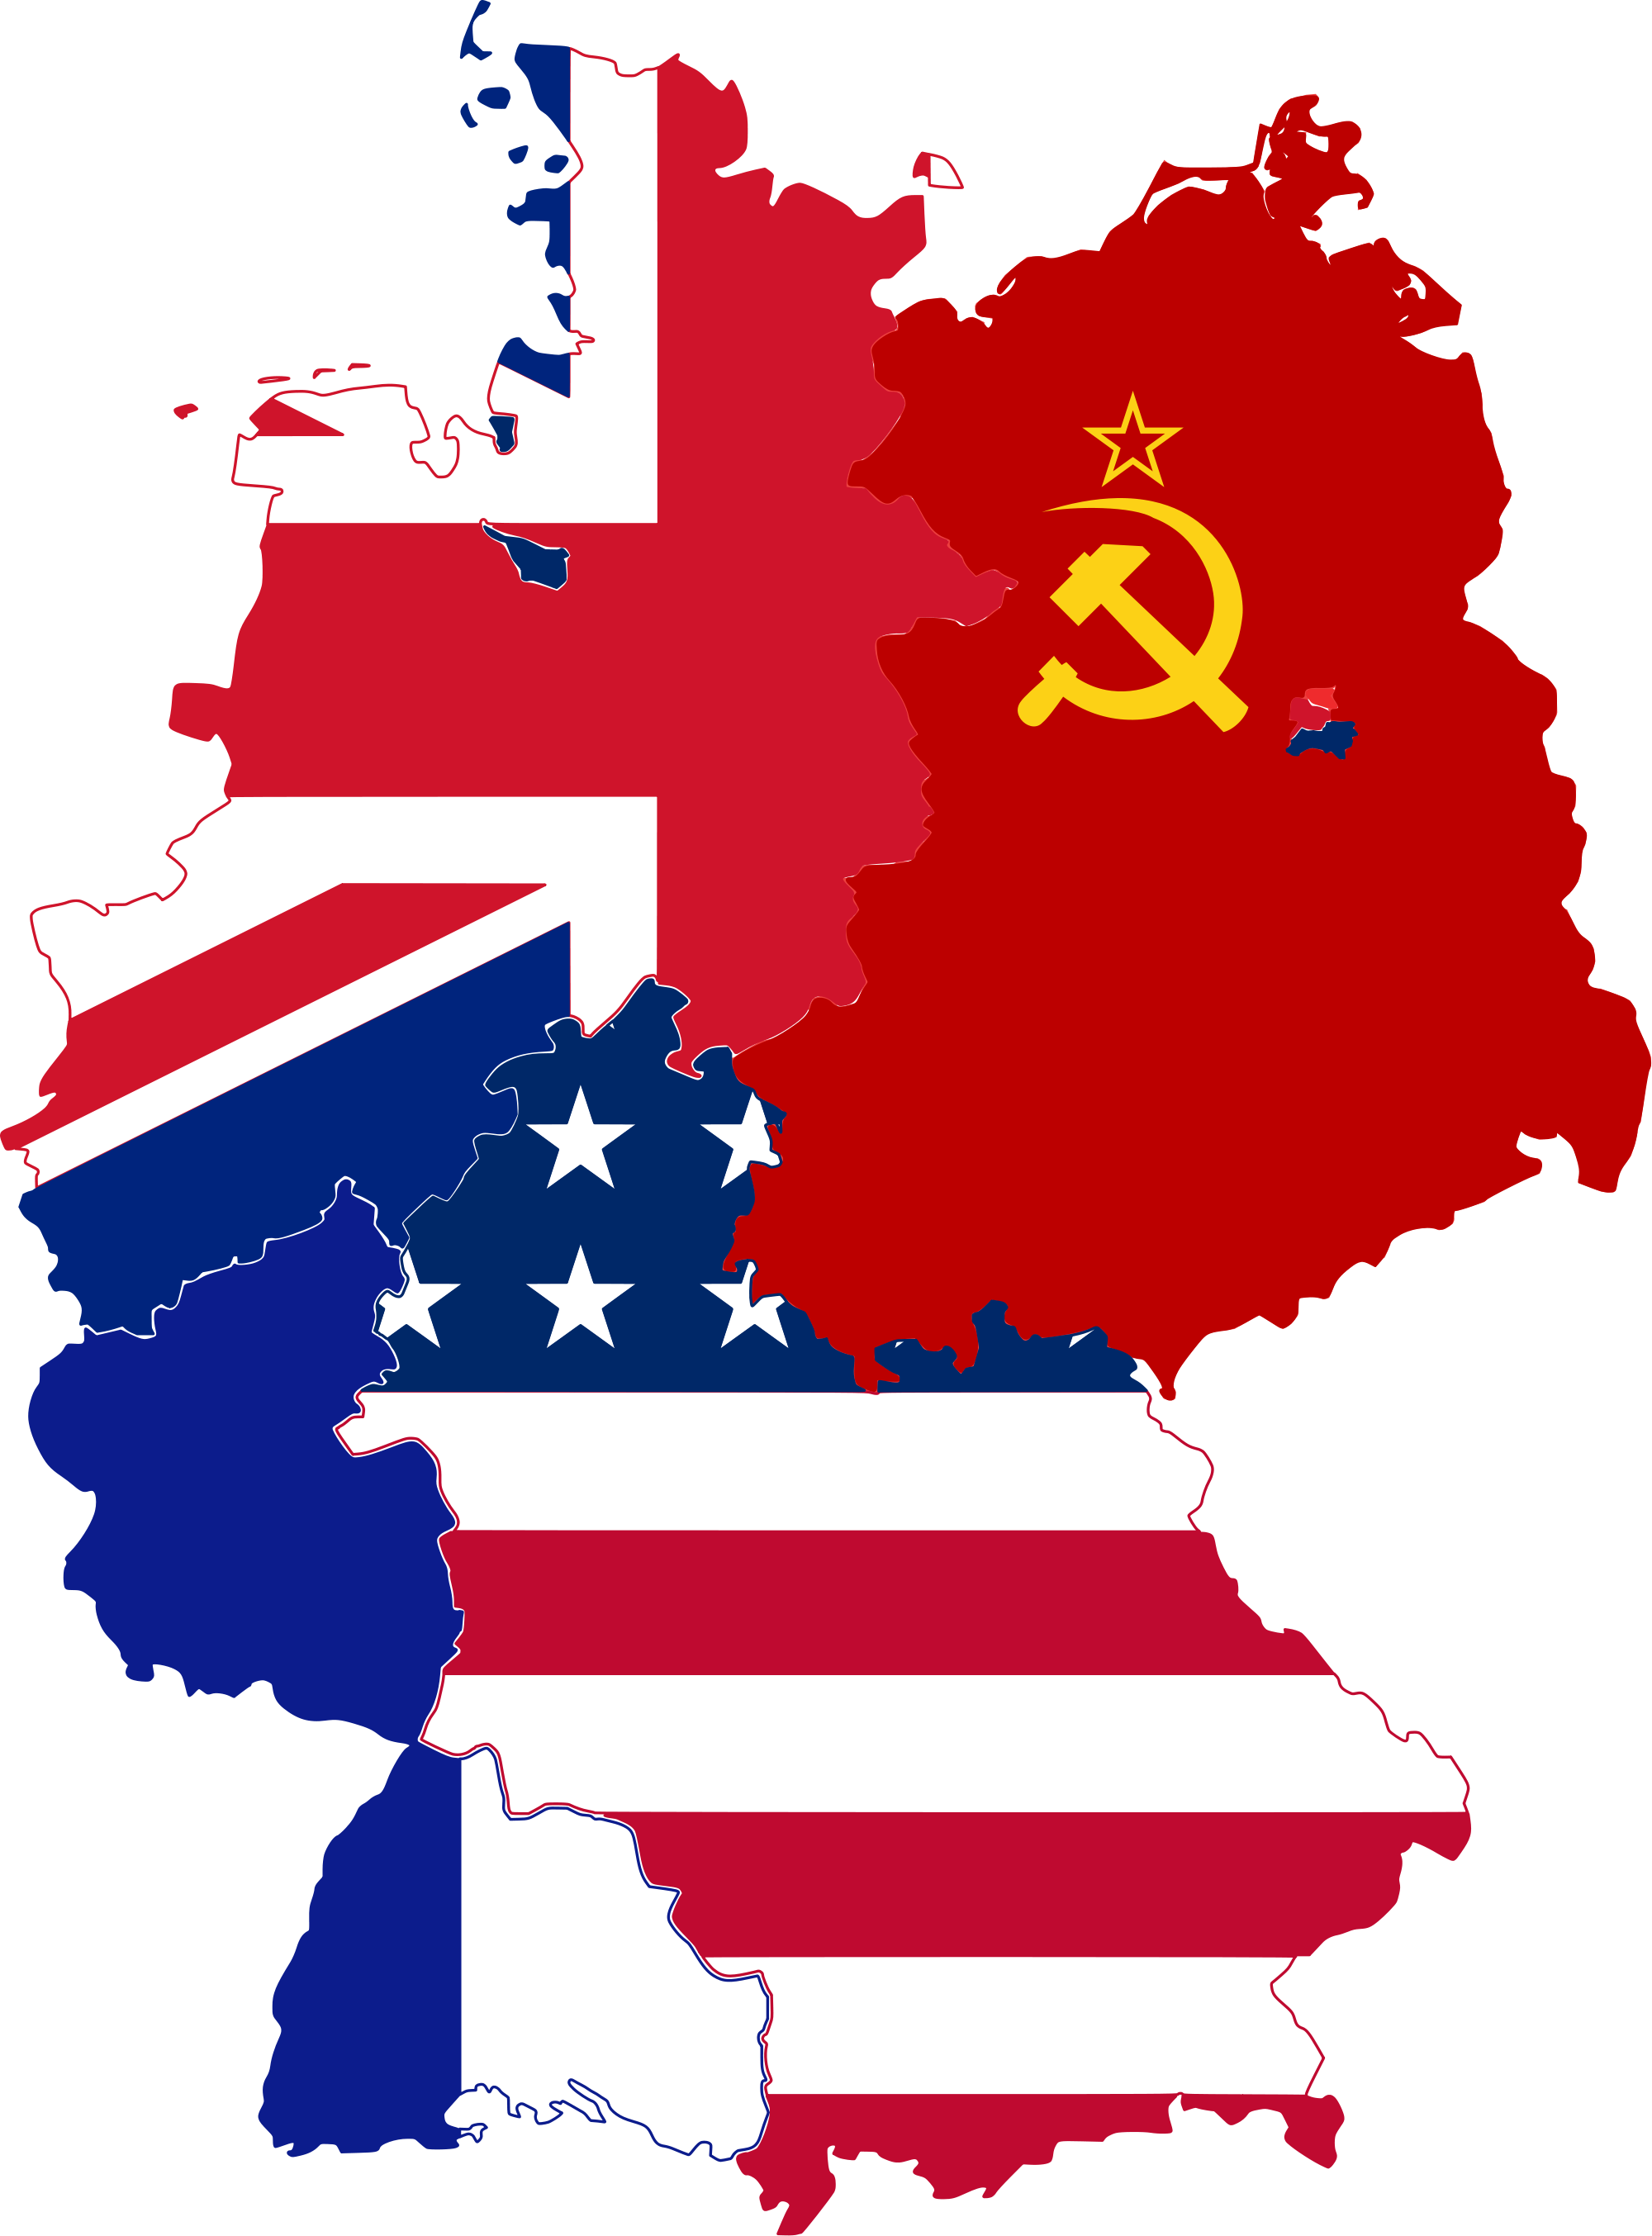 Germany clipart map 1933. File flag of the